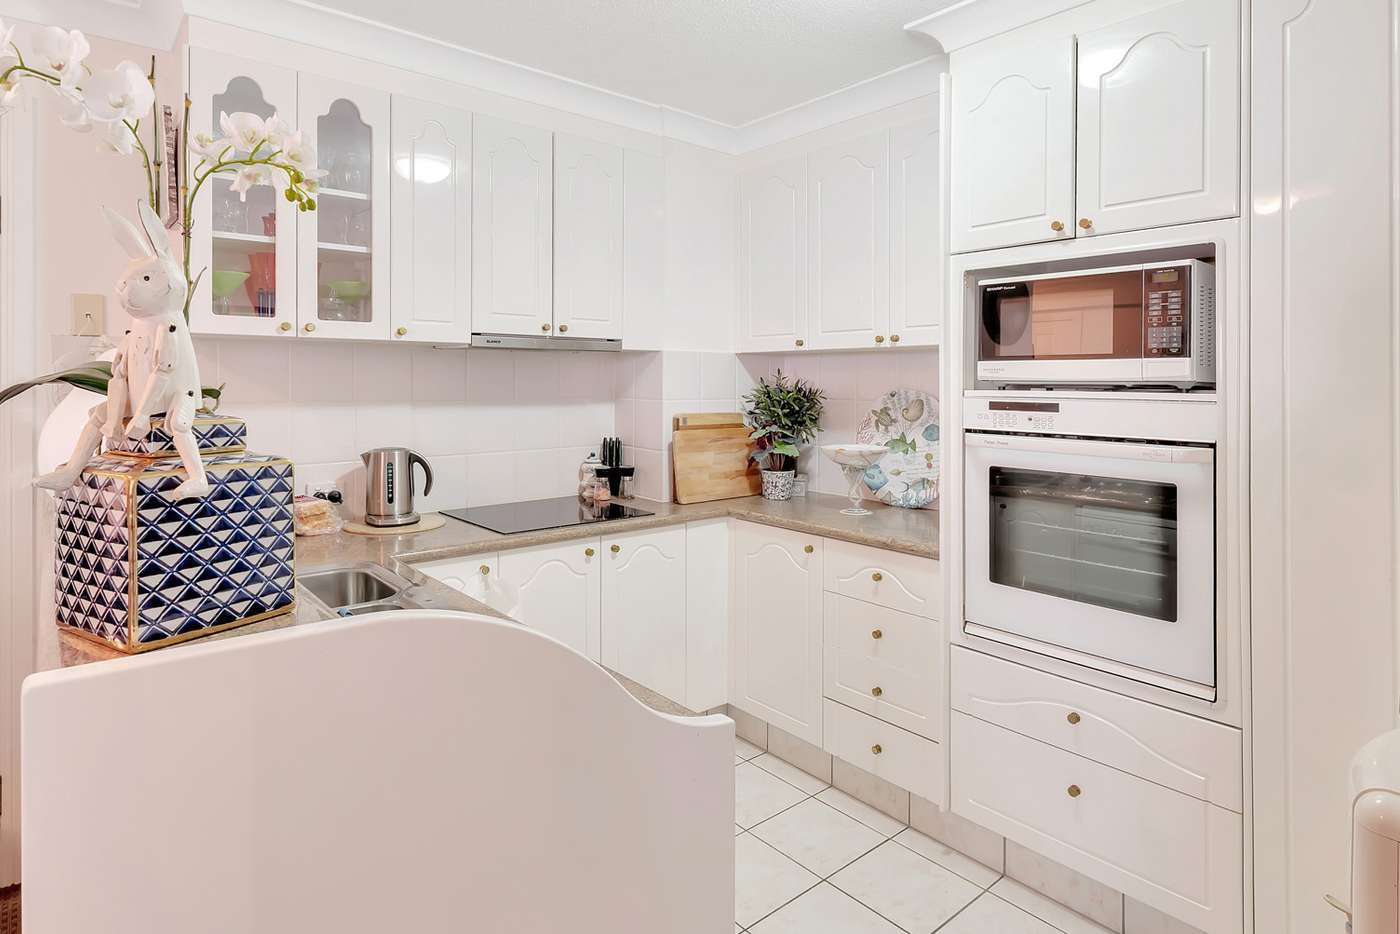 Sixth view of Homely apartment listing, 31/100 Cotlew Street East, Southport QLD 4215